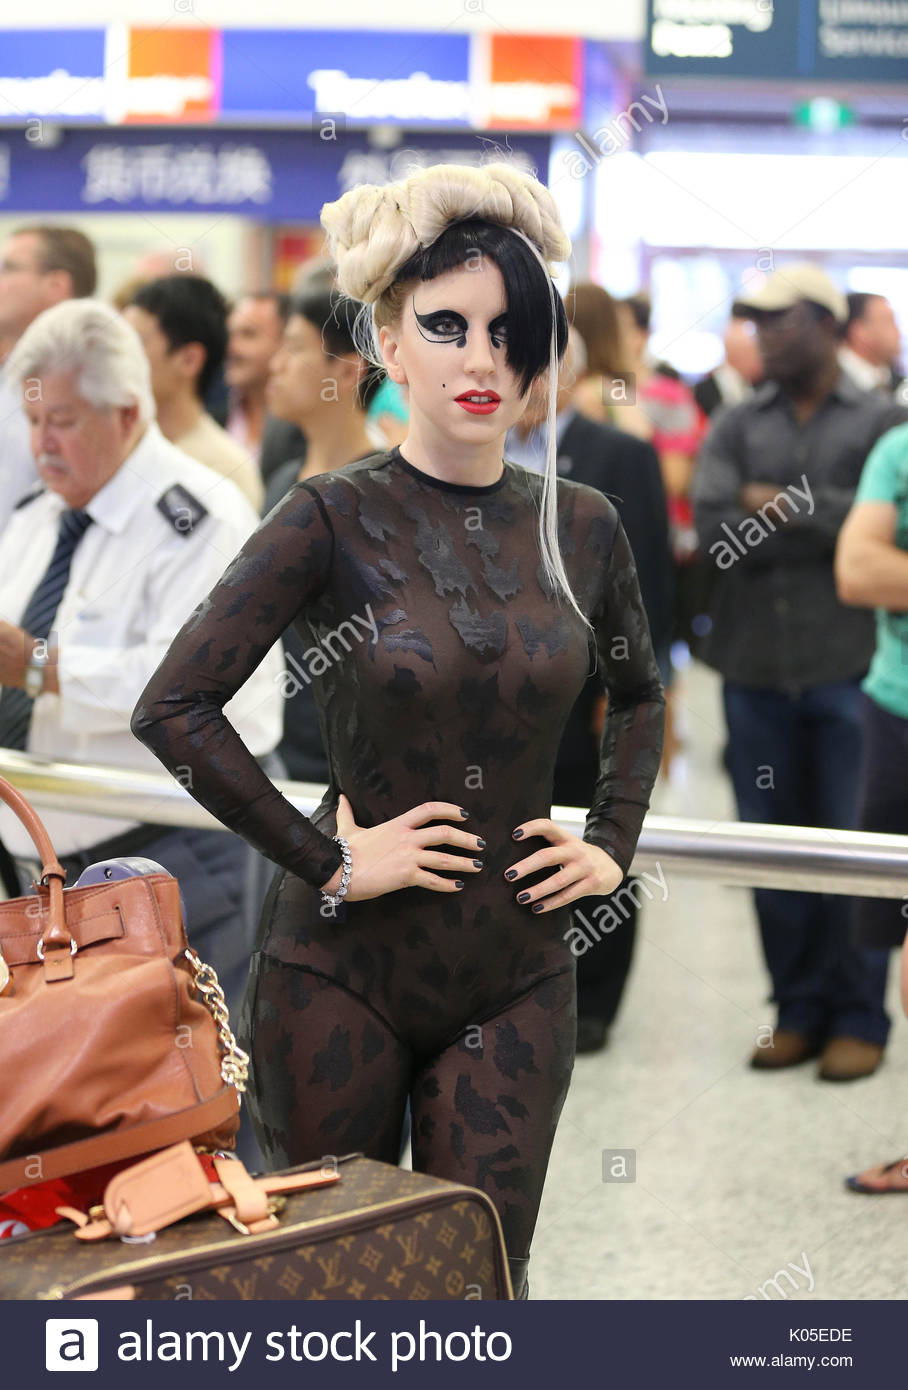 Who does lady gaga date in Sydney